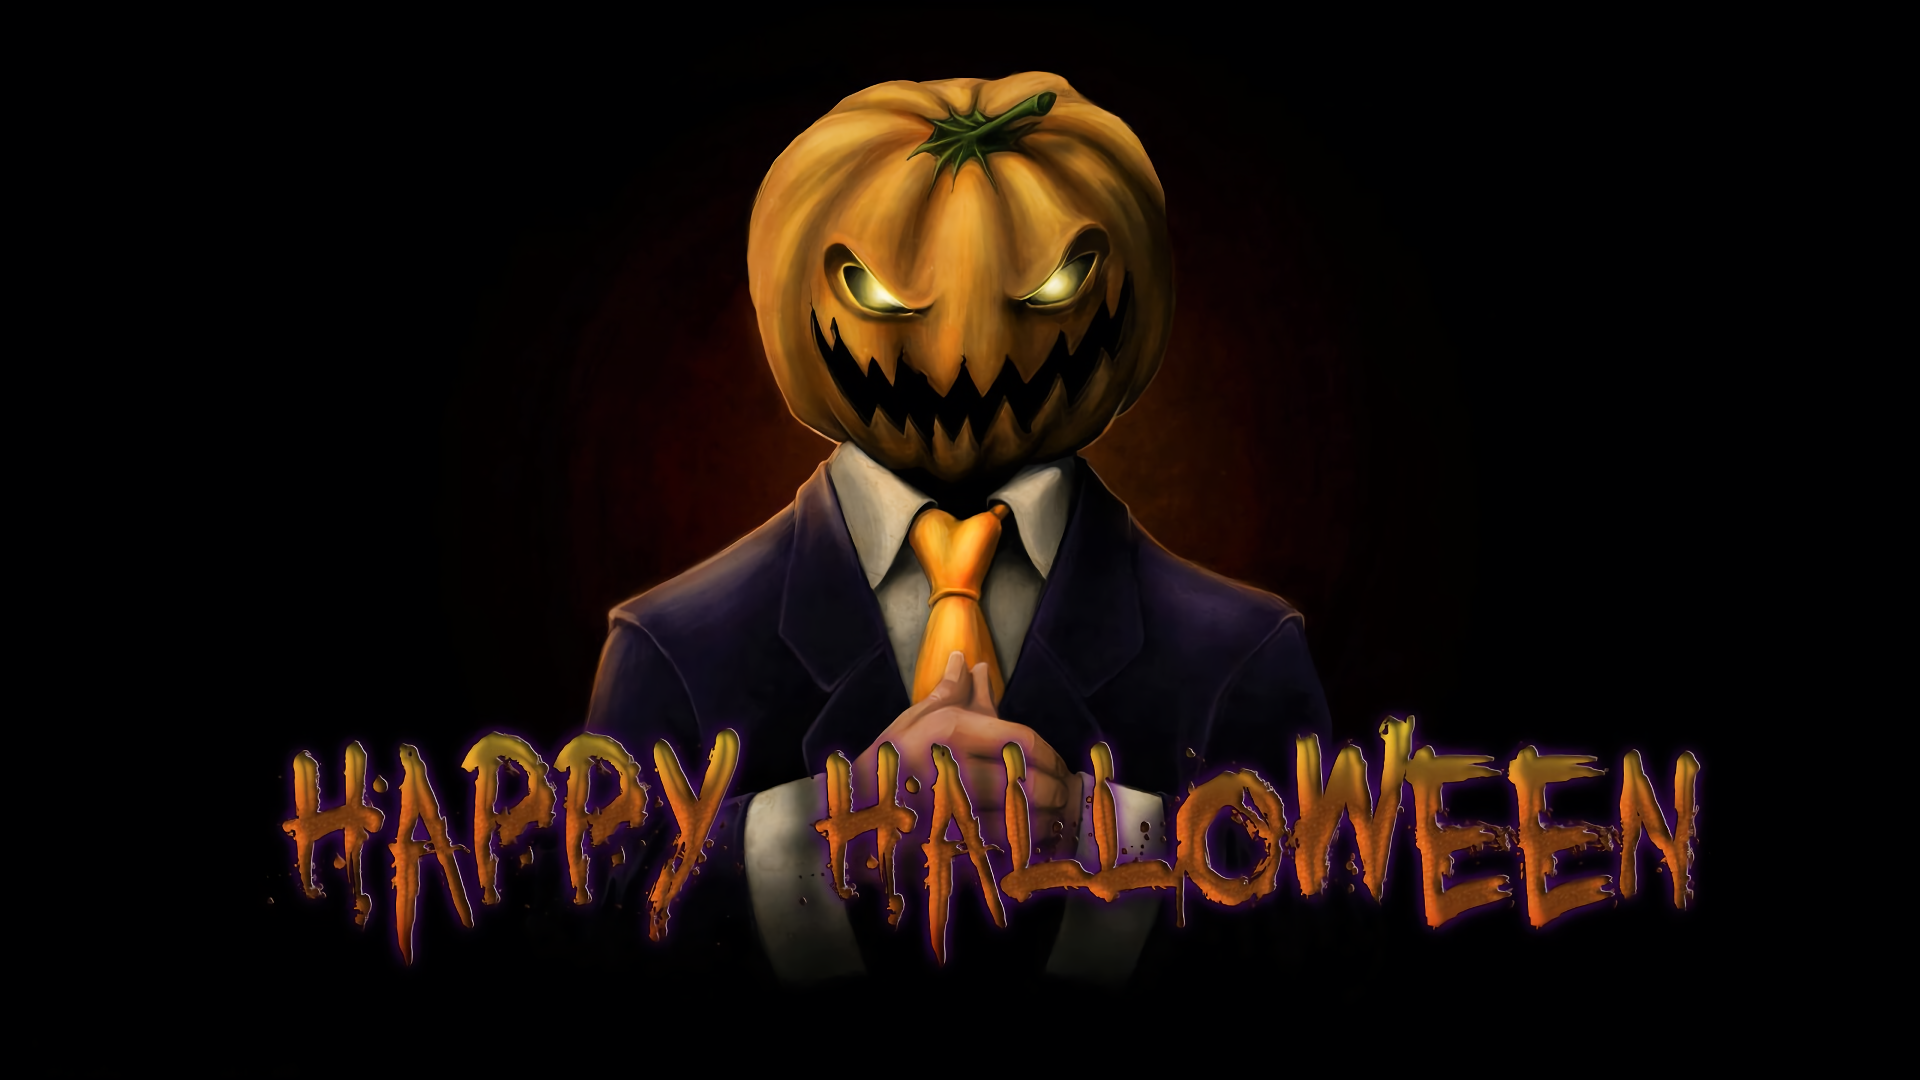 1920x1086 - Scary Halloween Background 45